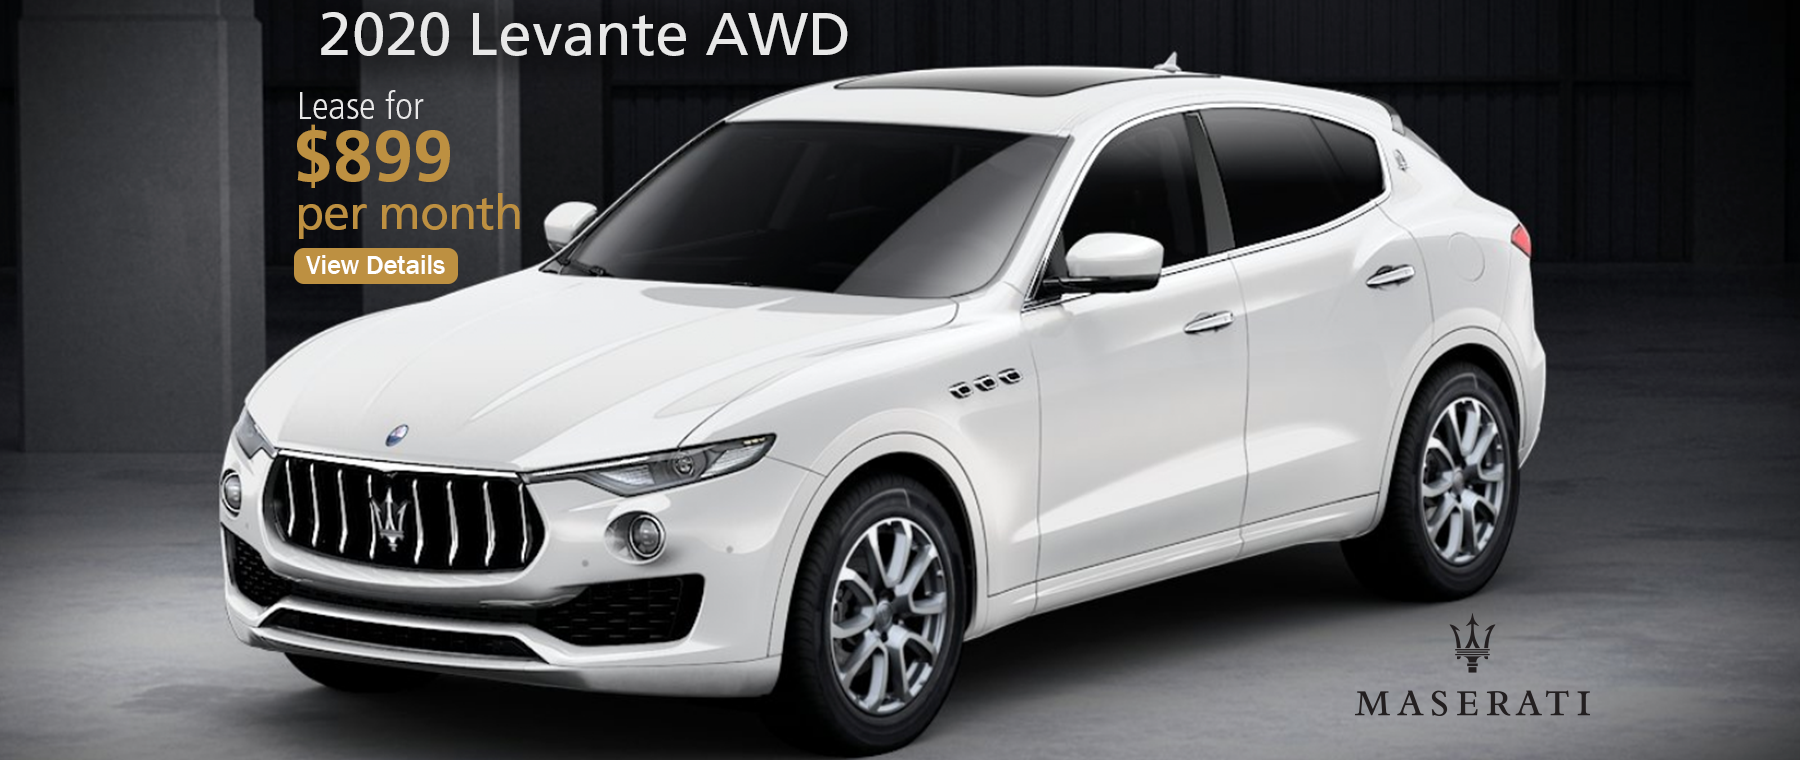 oct-2020-levante-awd-s3846